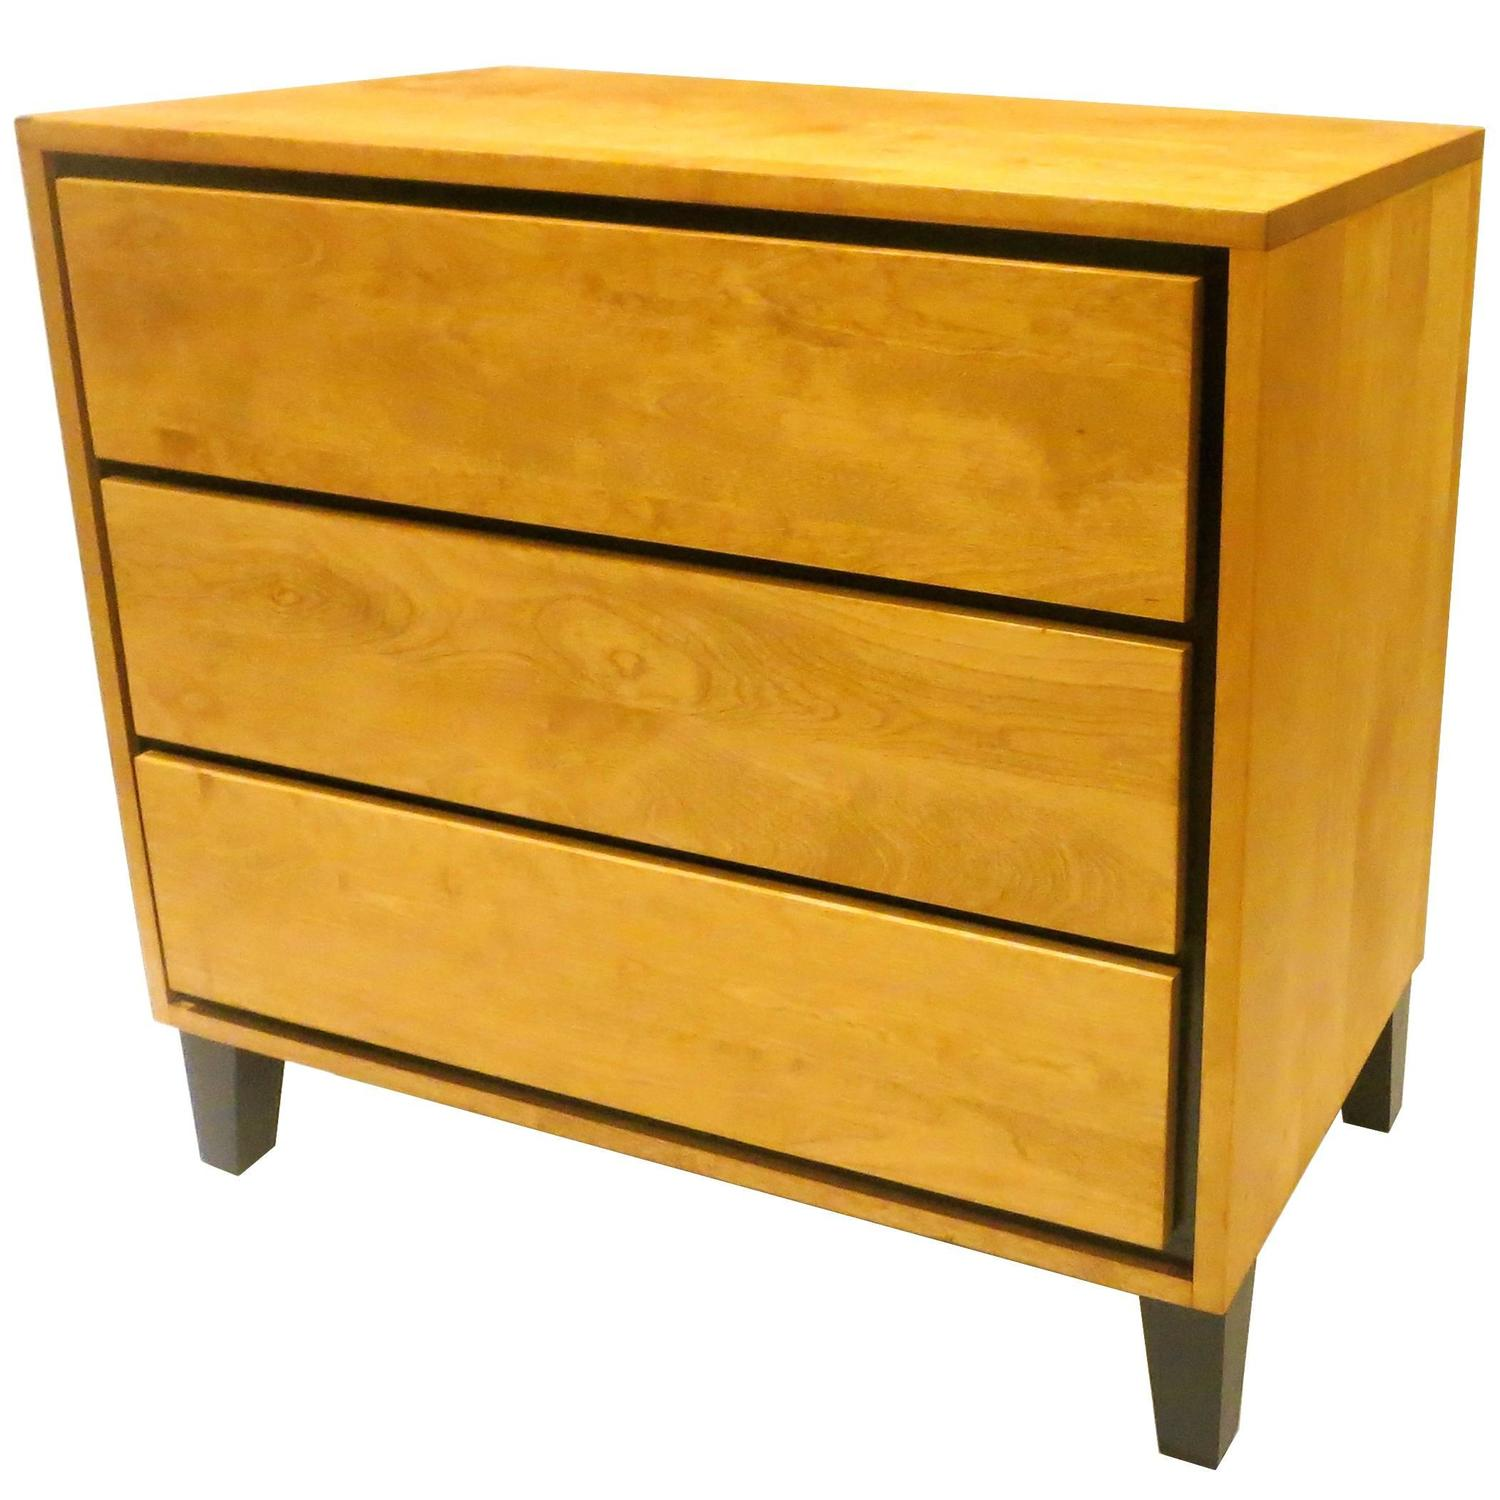 1950s American Modern Triple Drawer Dresser By Russel